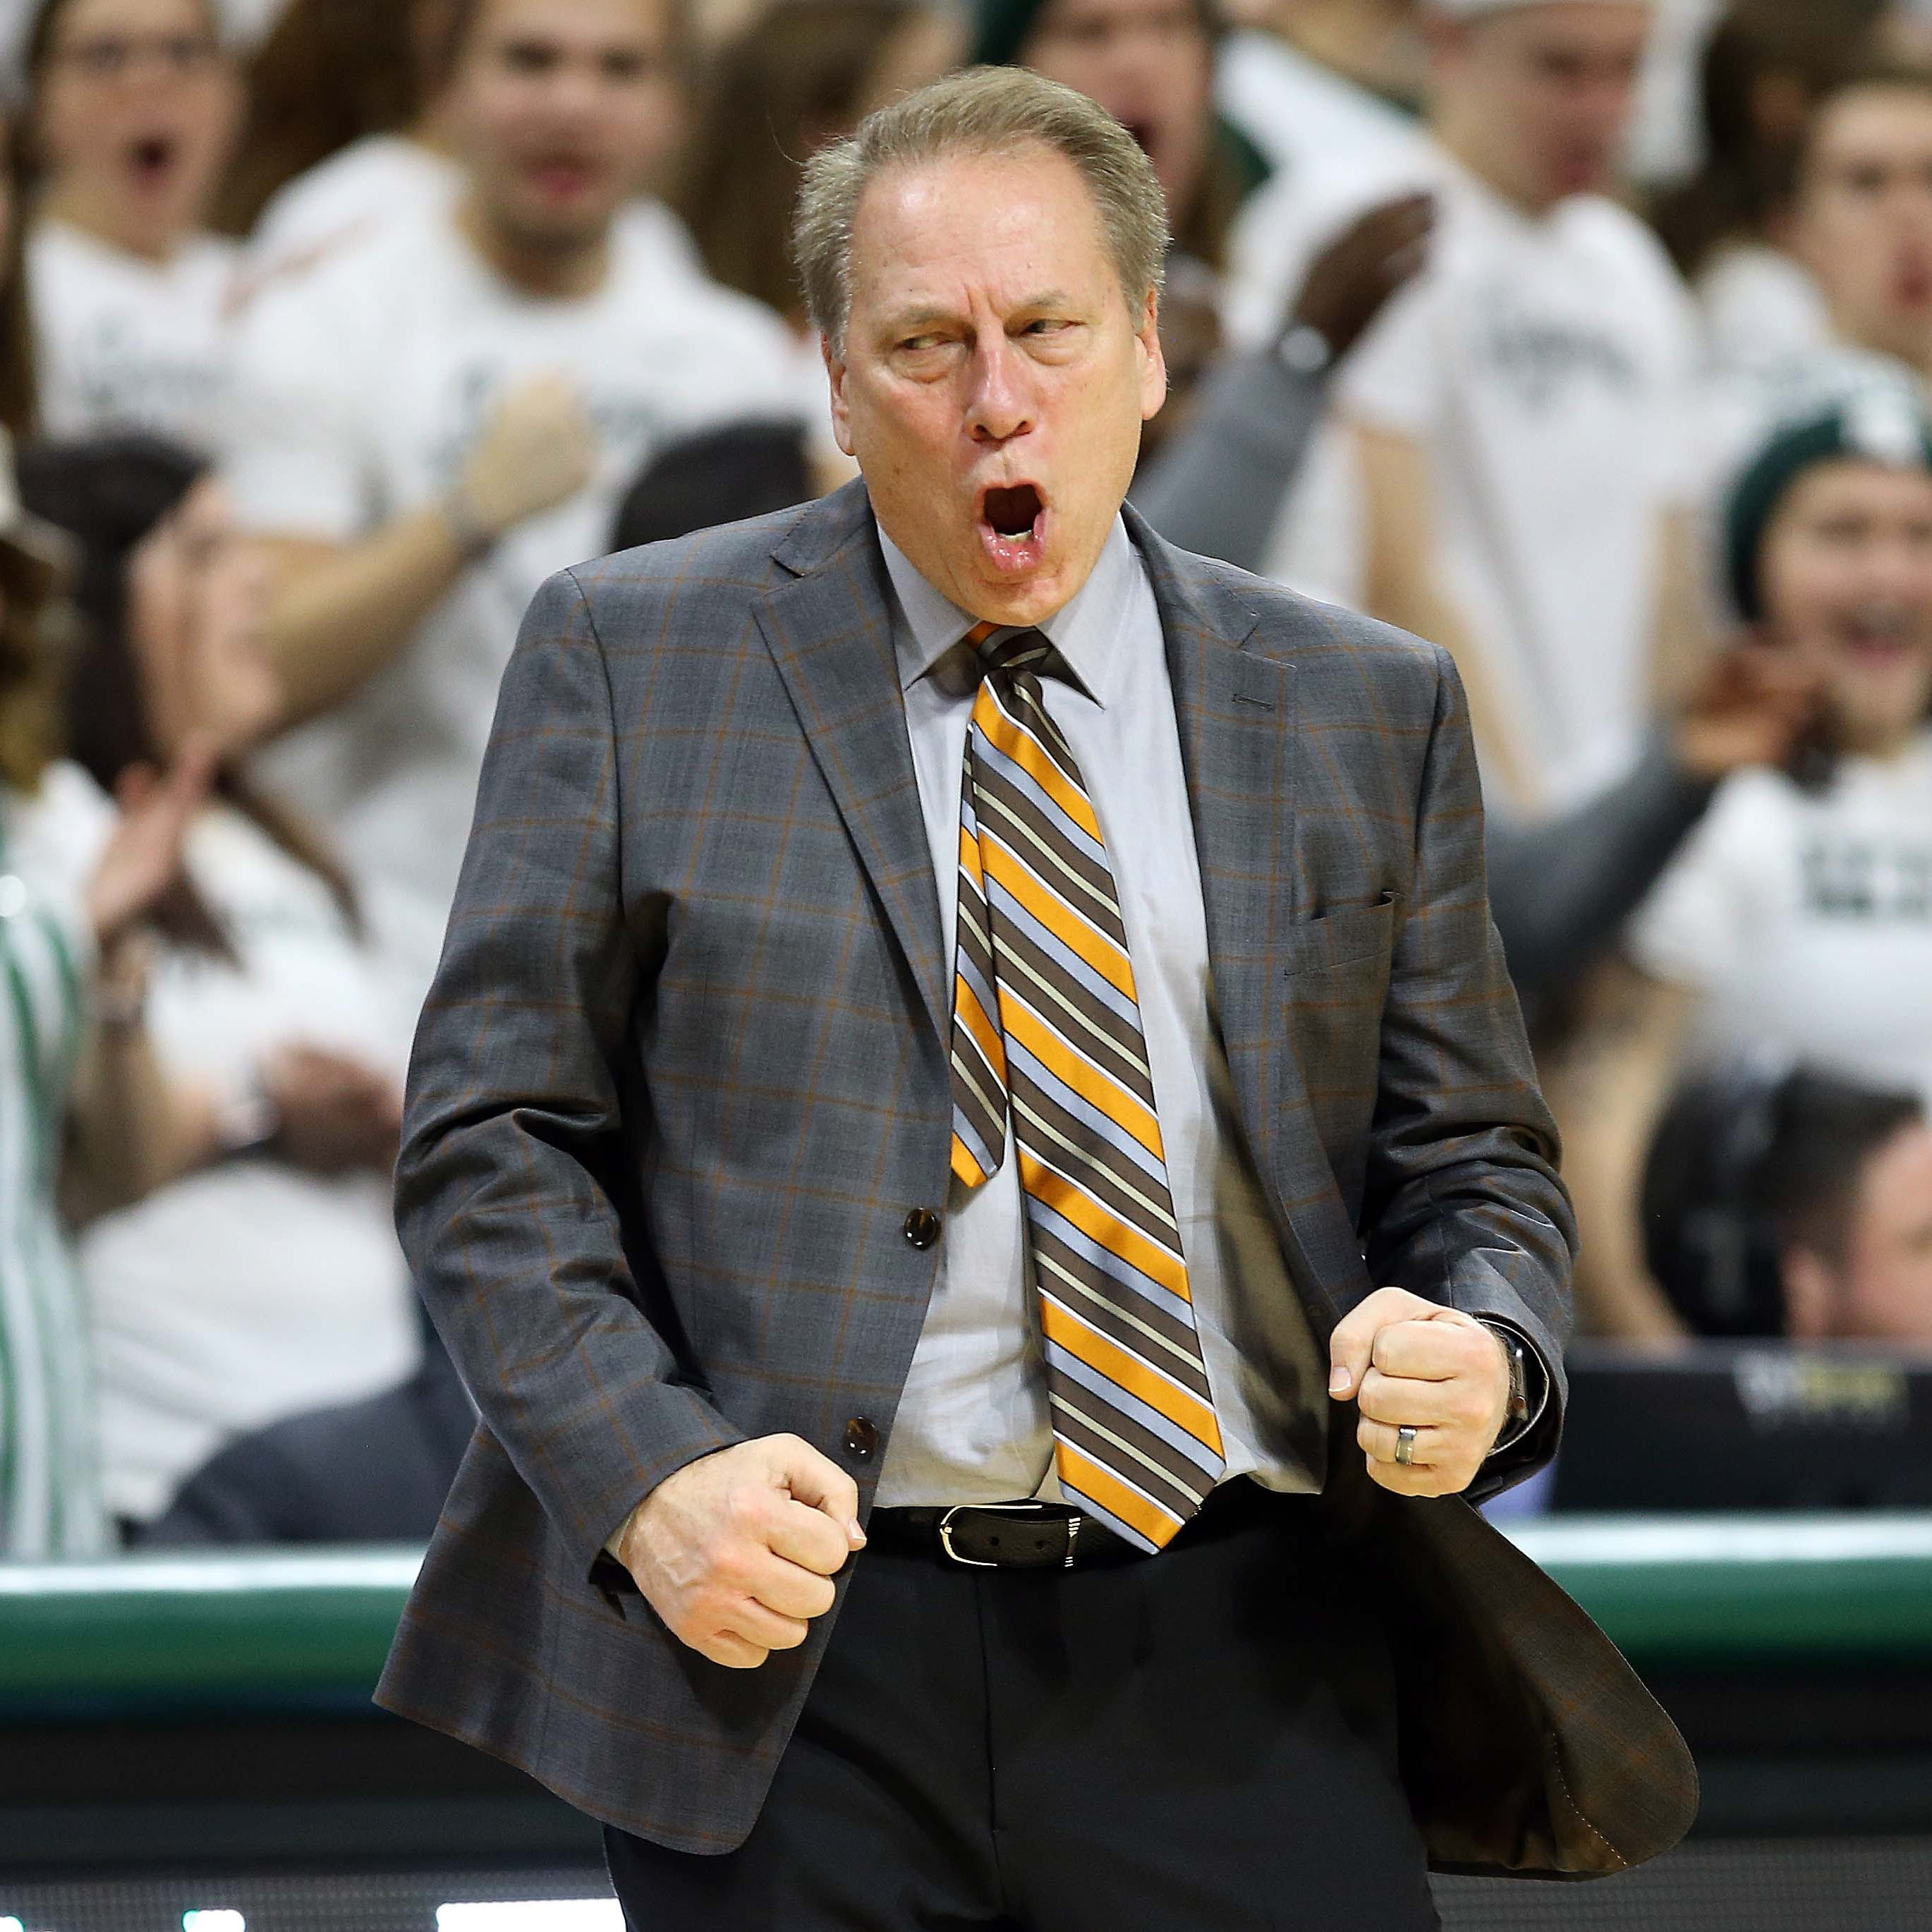 Couch chat replay: Concerns and projections for this Michigan State basketball team